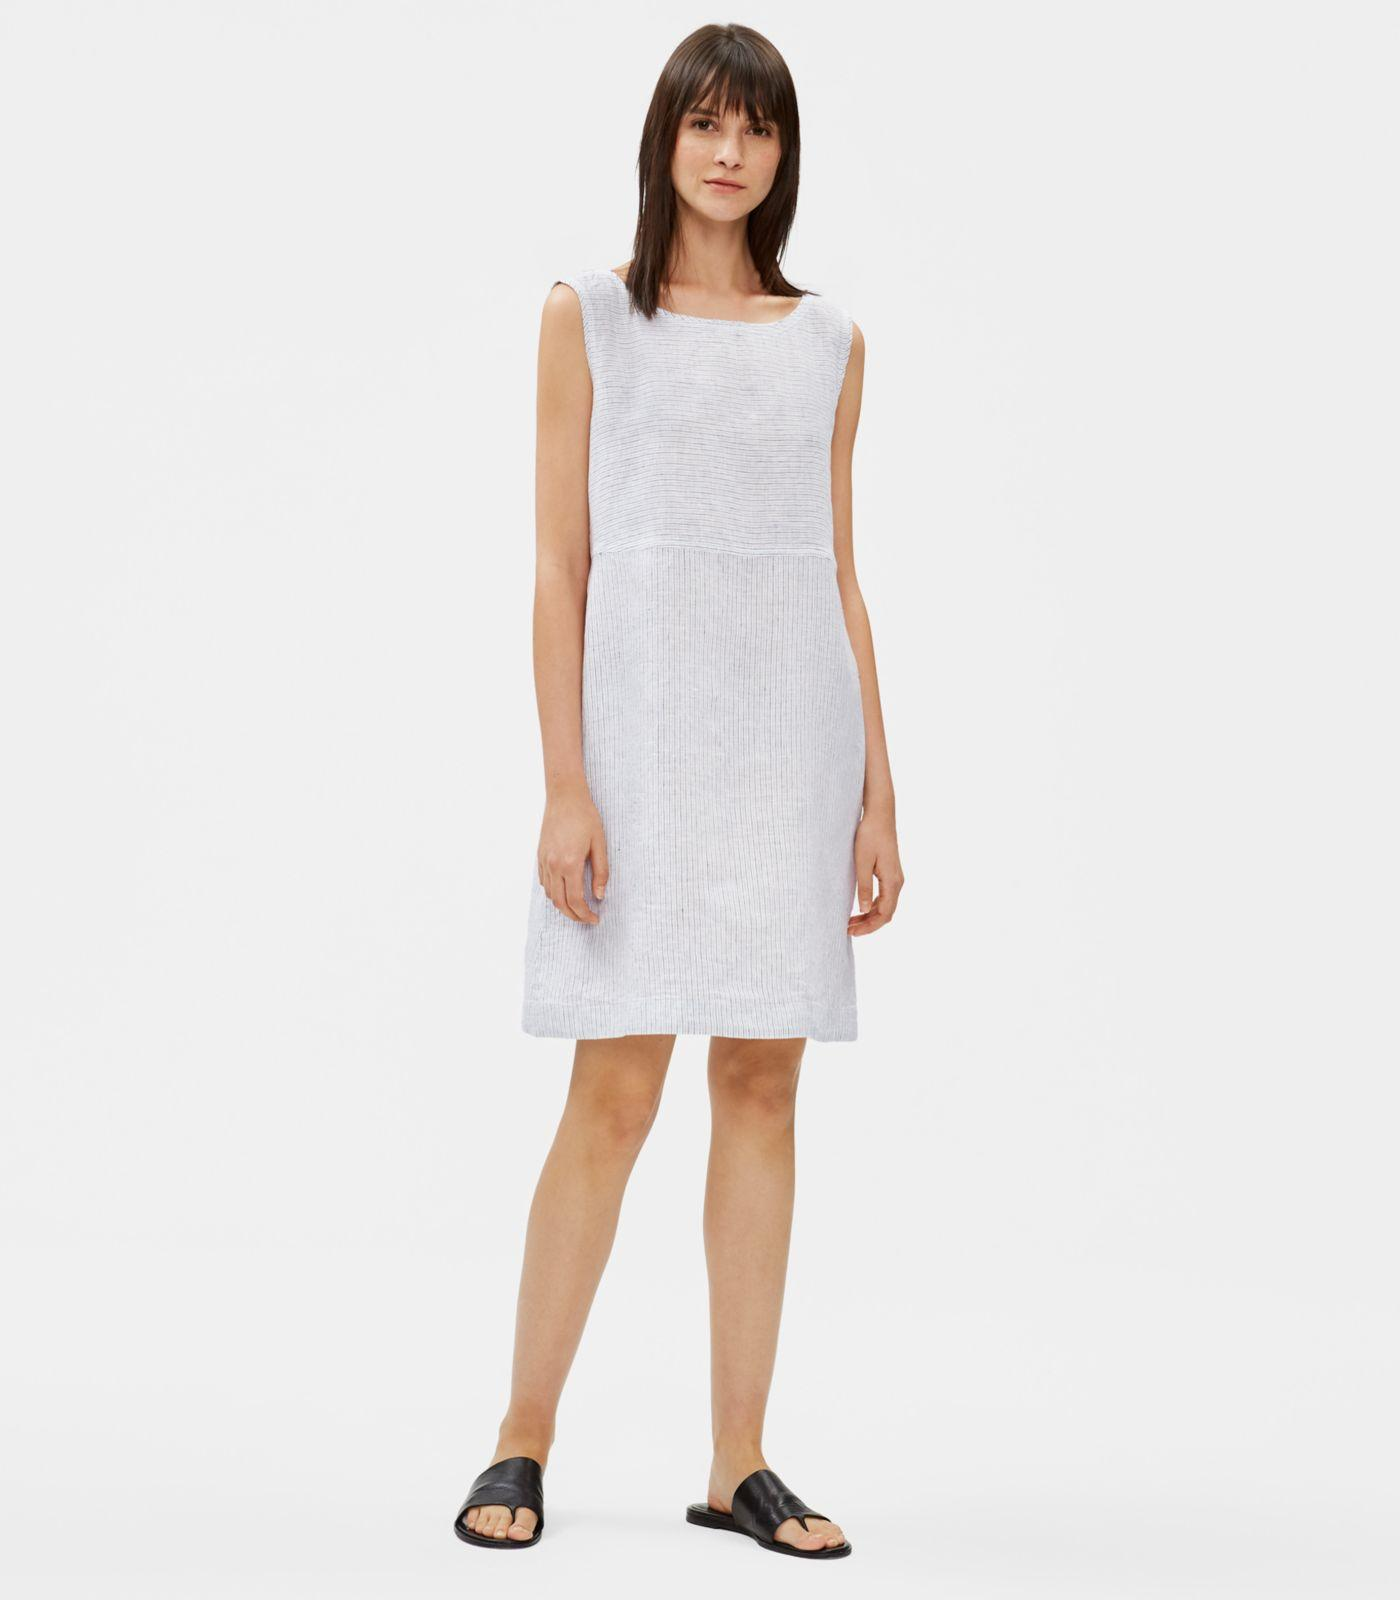 fd6d4591126 Lyst - Eileen Fisher Organic Handkerchief Linen Striped Dress in White